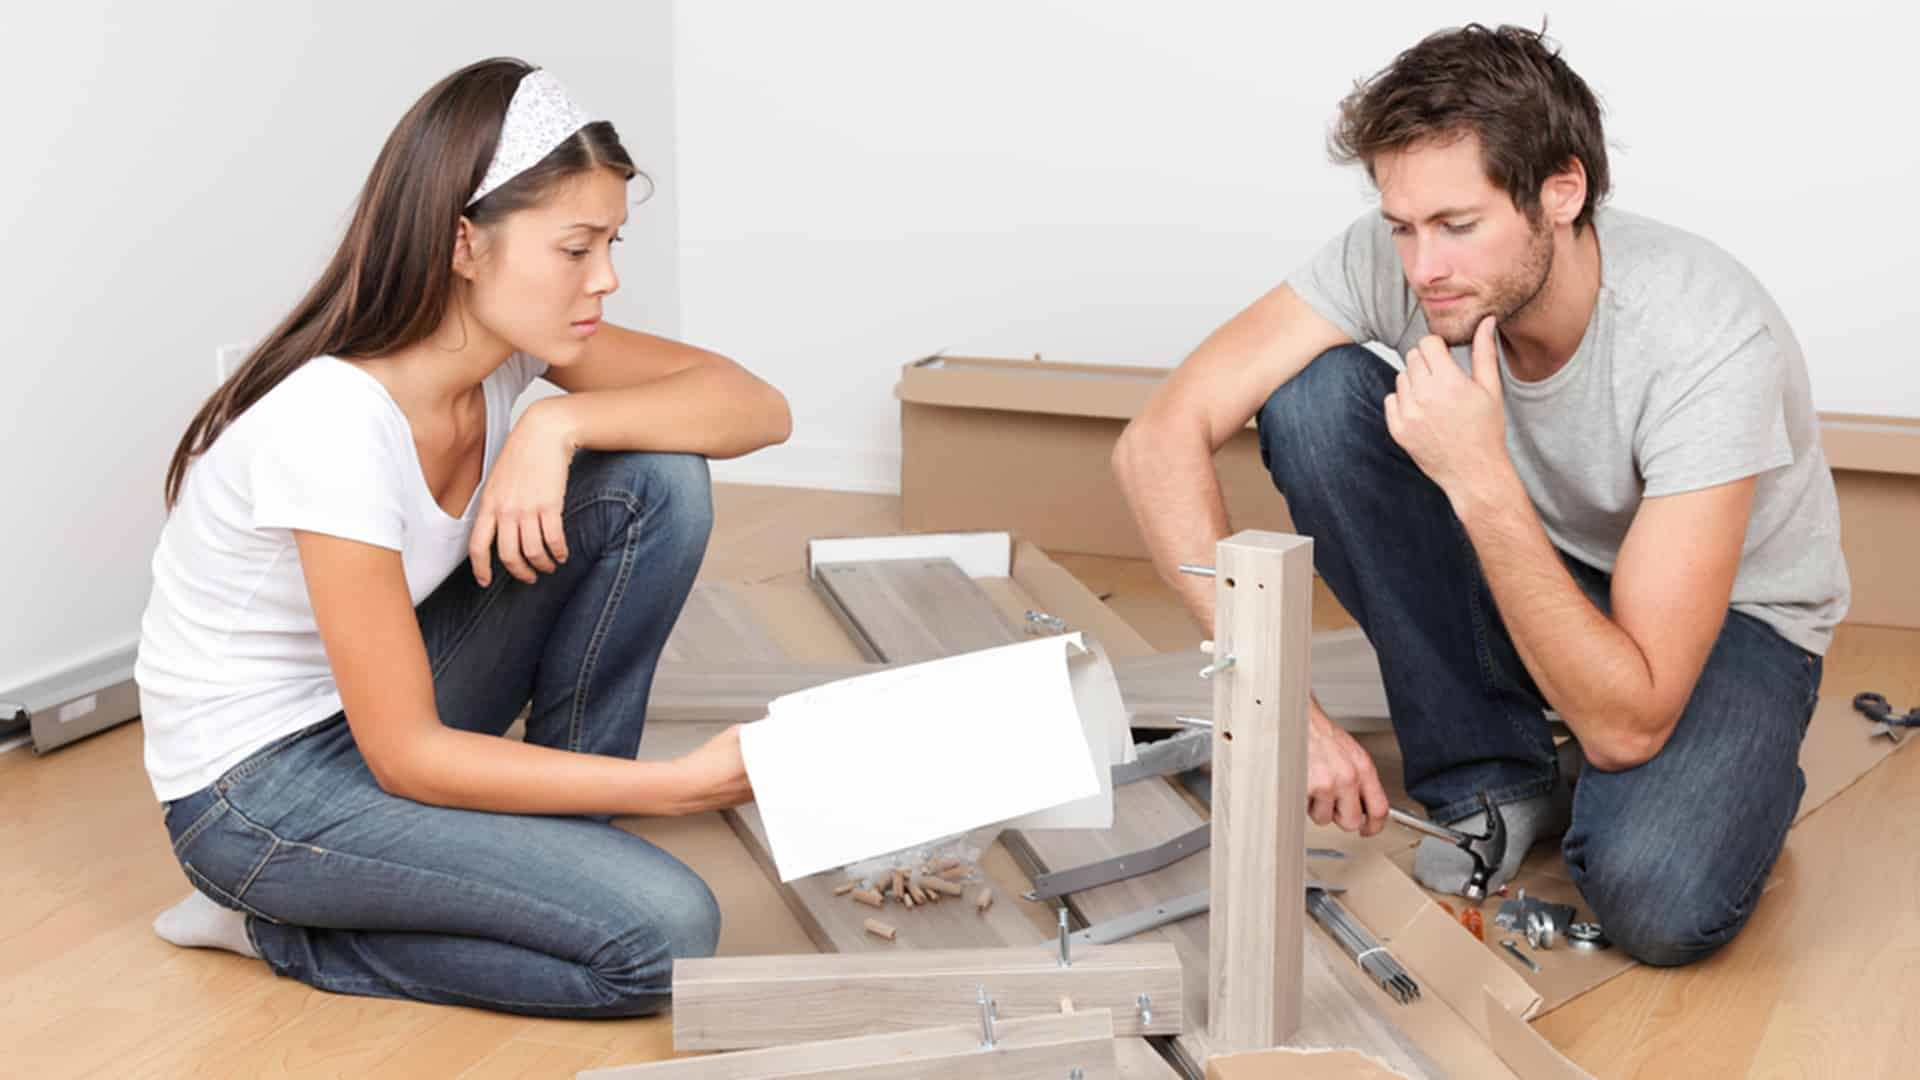 Featured image for How Many Times Have You And Your SO Fought While Building New Furniture?